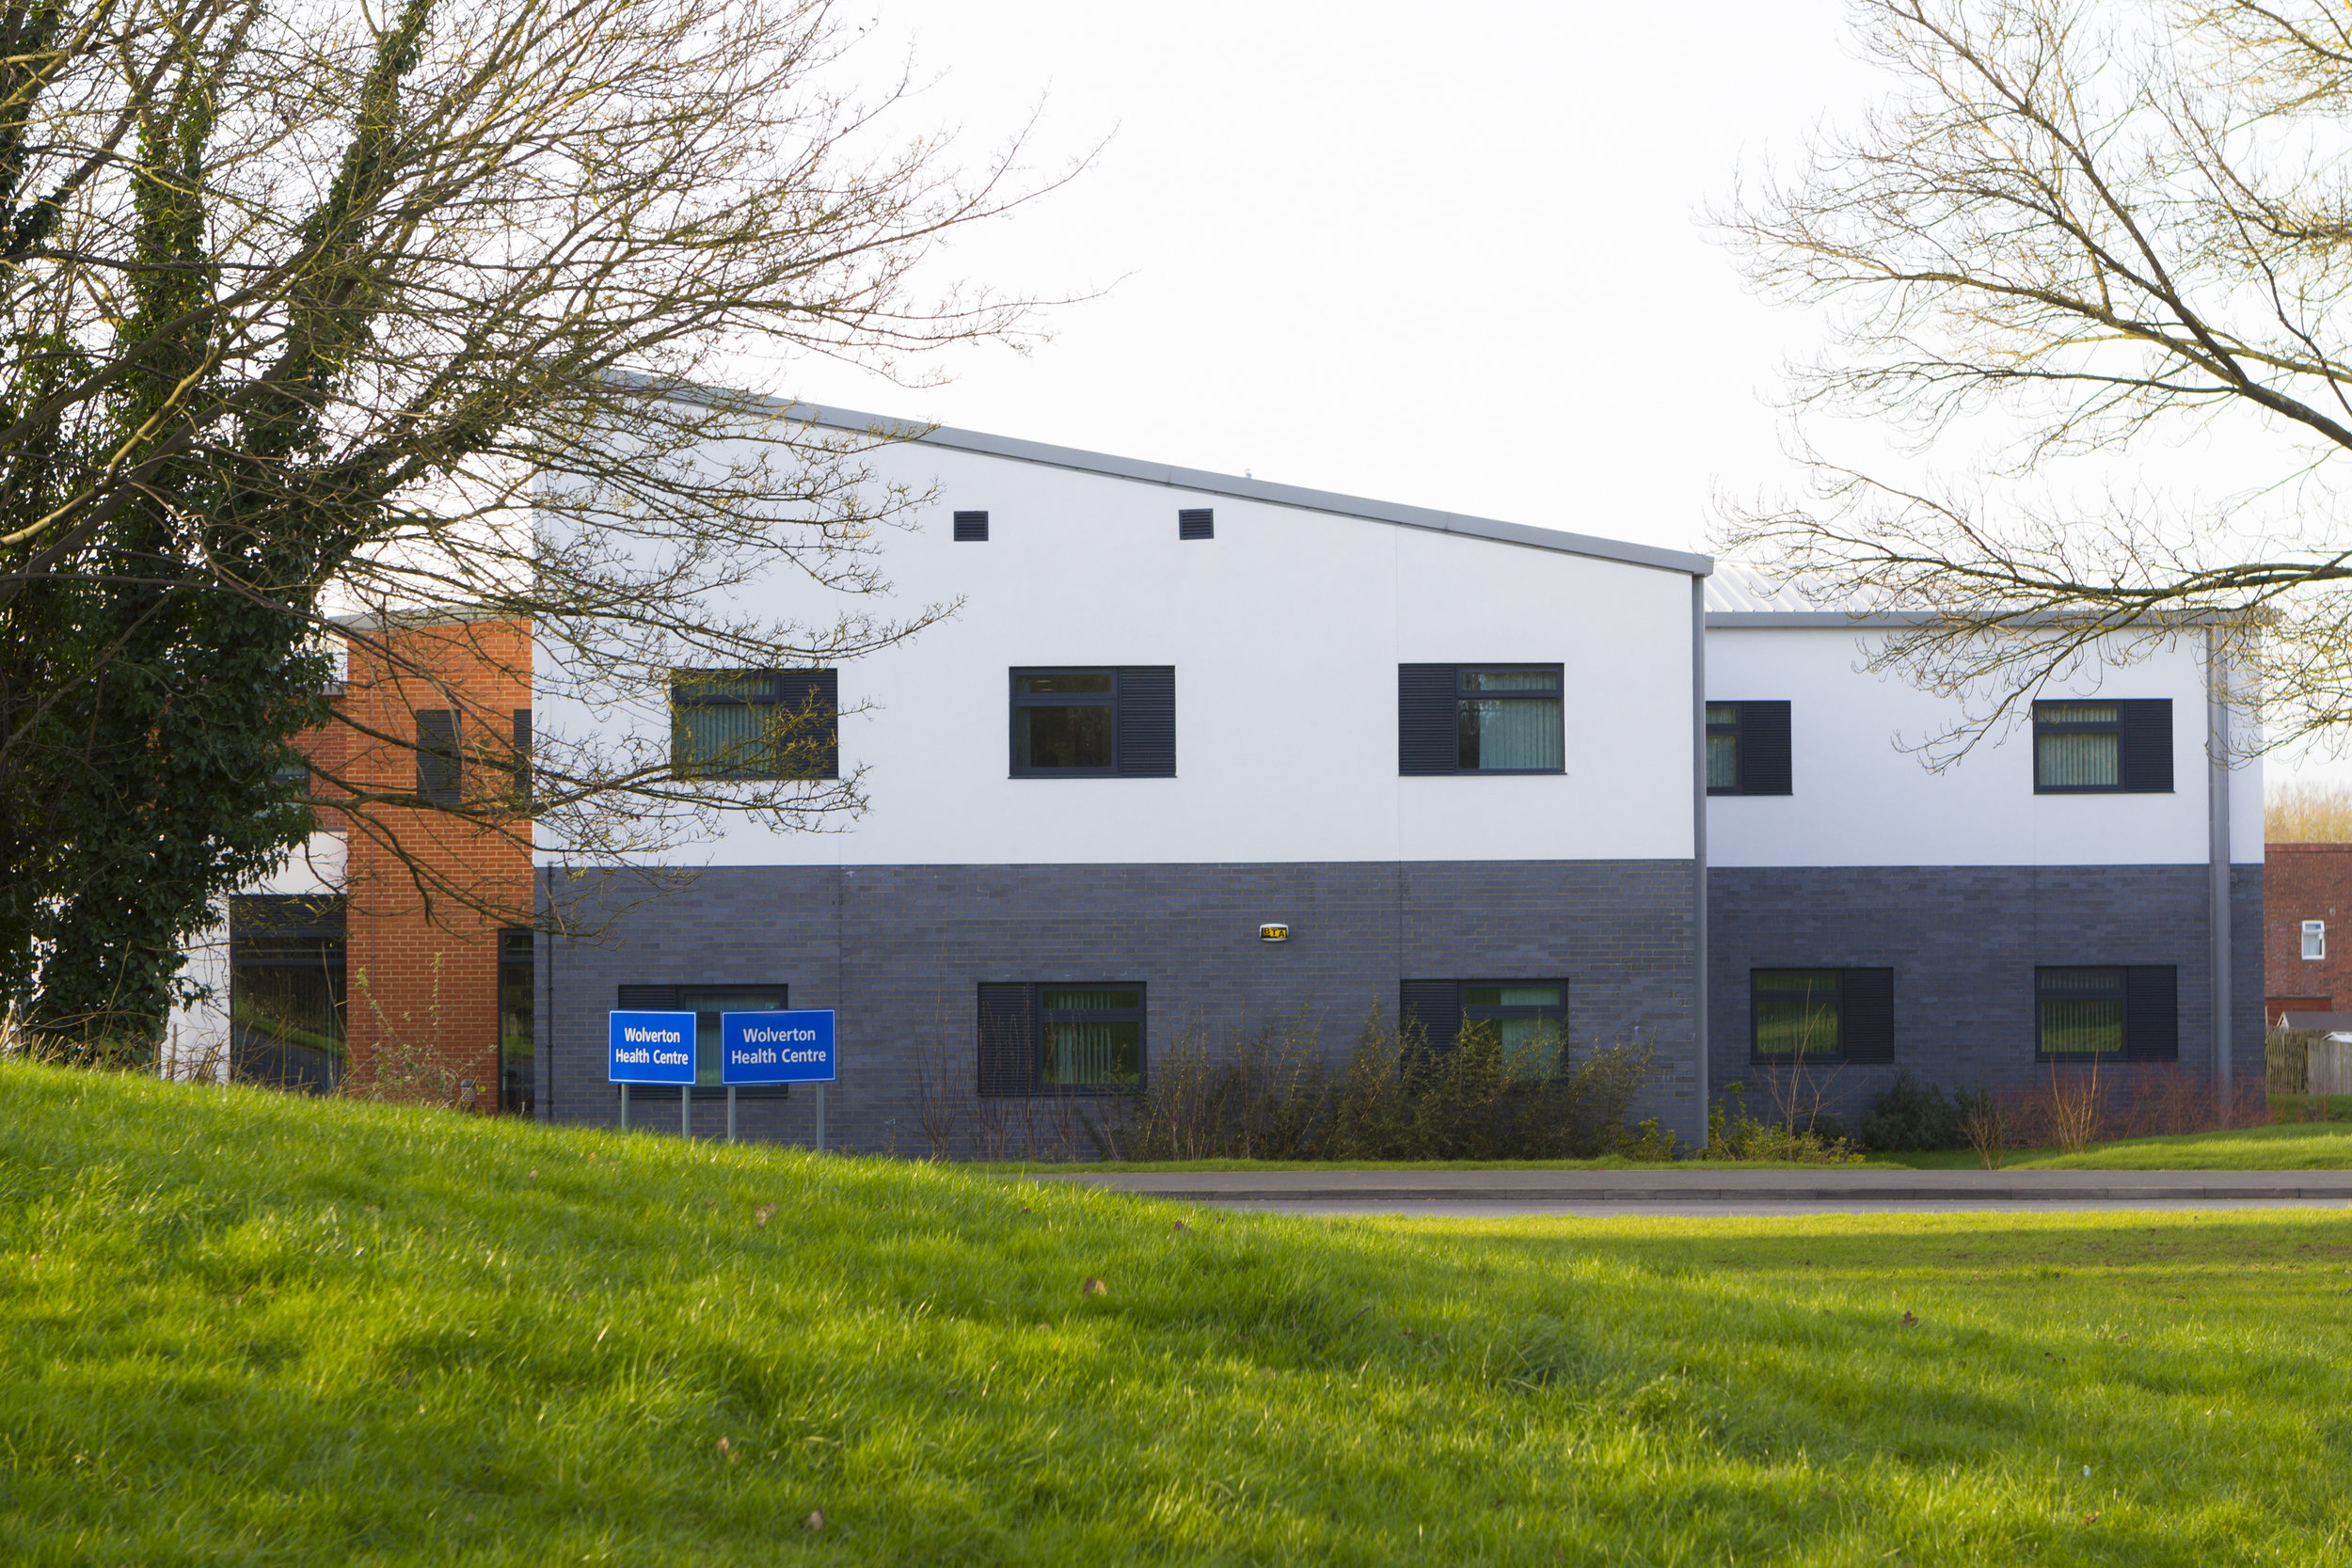 Healthcare - We deliver sustainable healthcare buildings that can be built more quickly and efficiently than traditional concrete or steel-frame buildings, with specifications to meet the requirements of the healthcare sector. Offsite manufacture minimises construction disruption and allows services to operate uninterrupted where necessary.